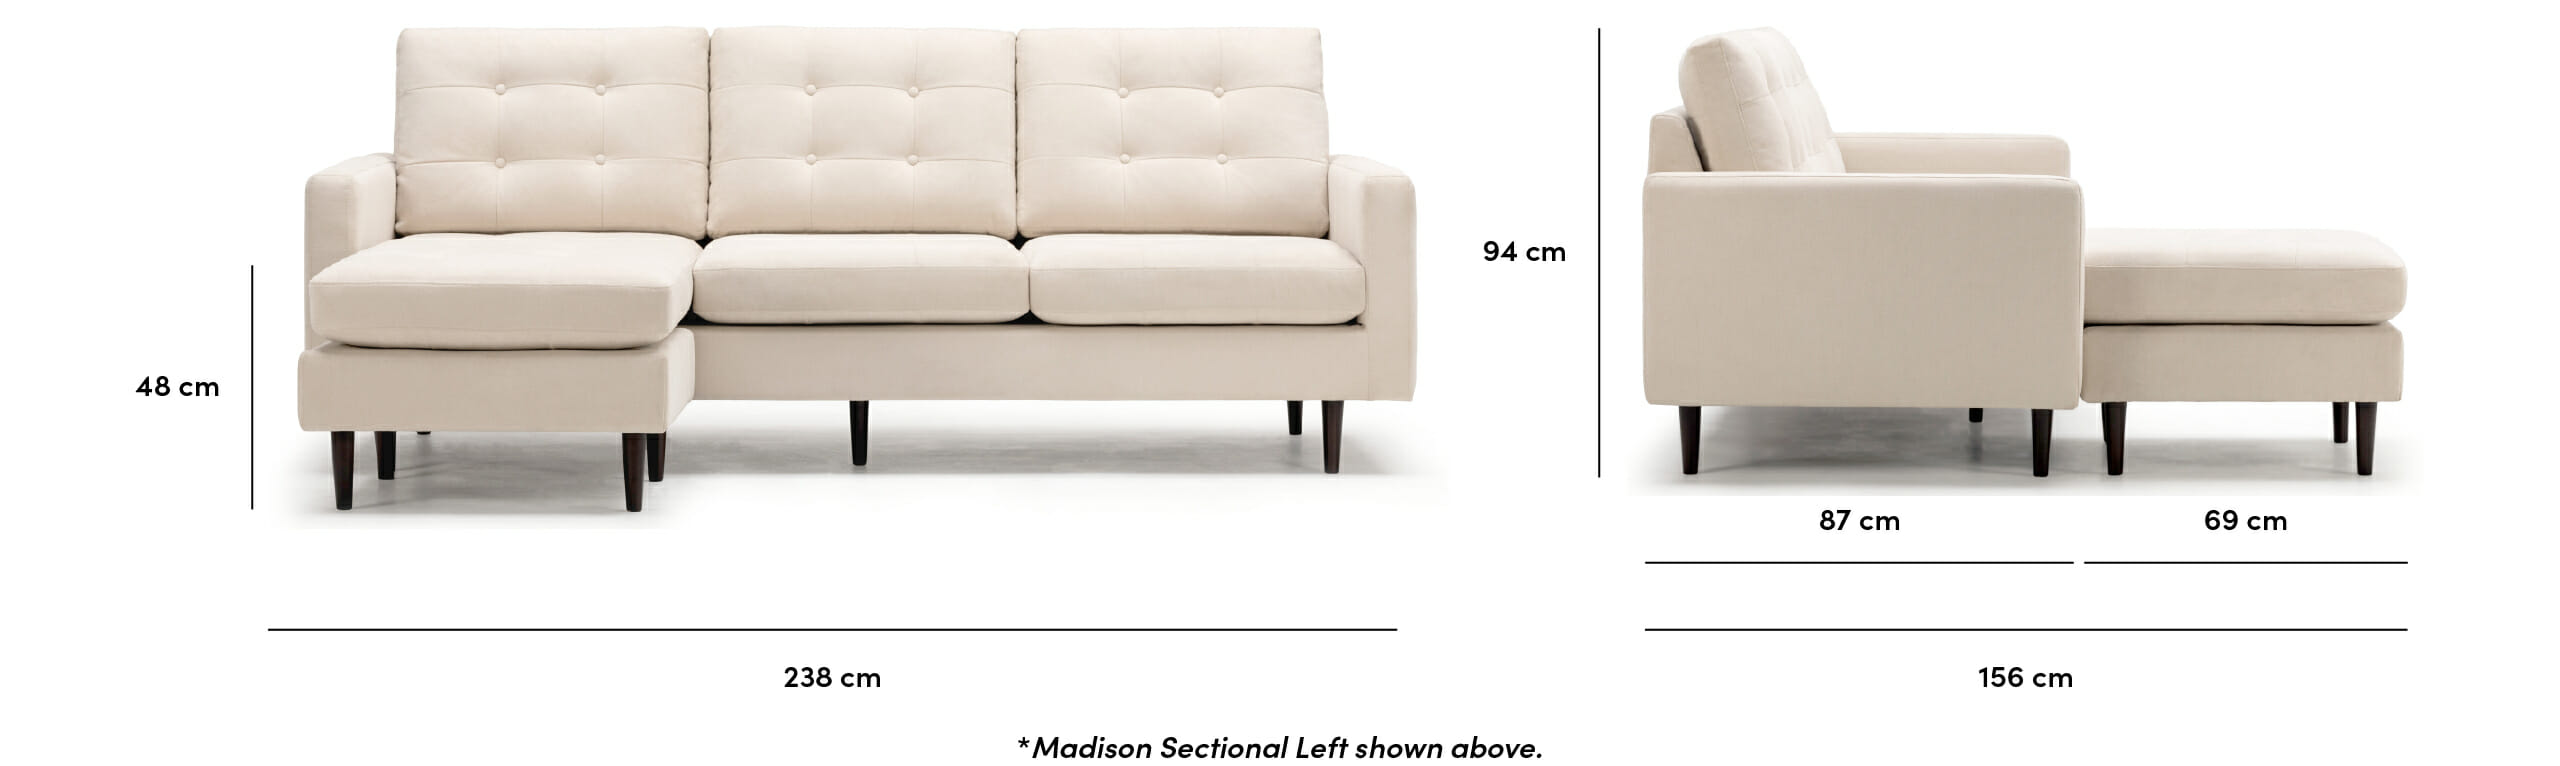 Madison sectional dimensions